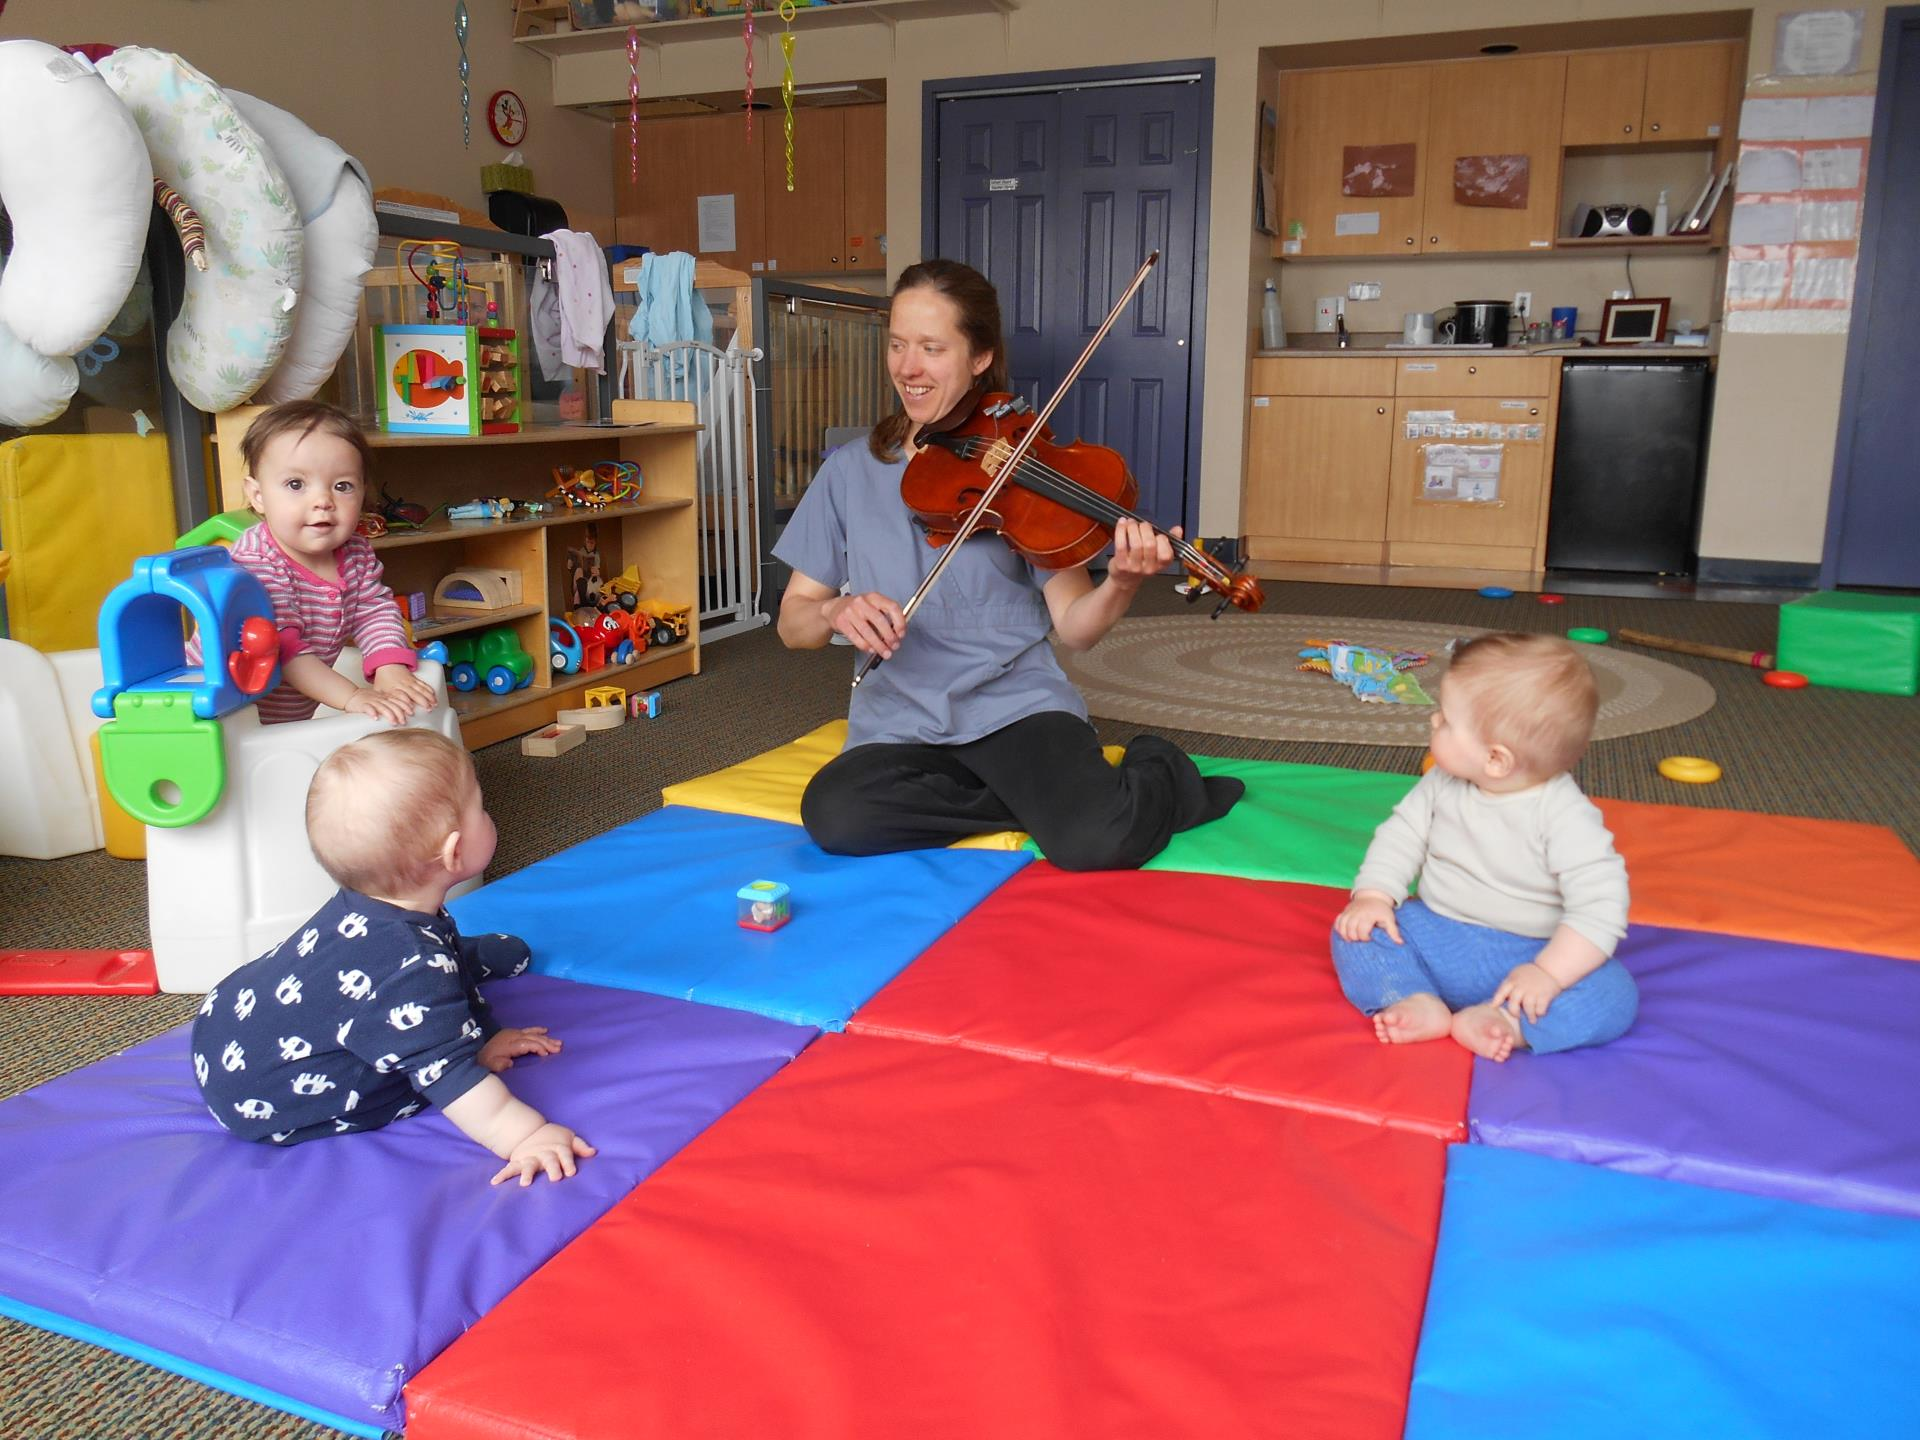 Babies & Music at Carriage House